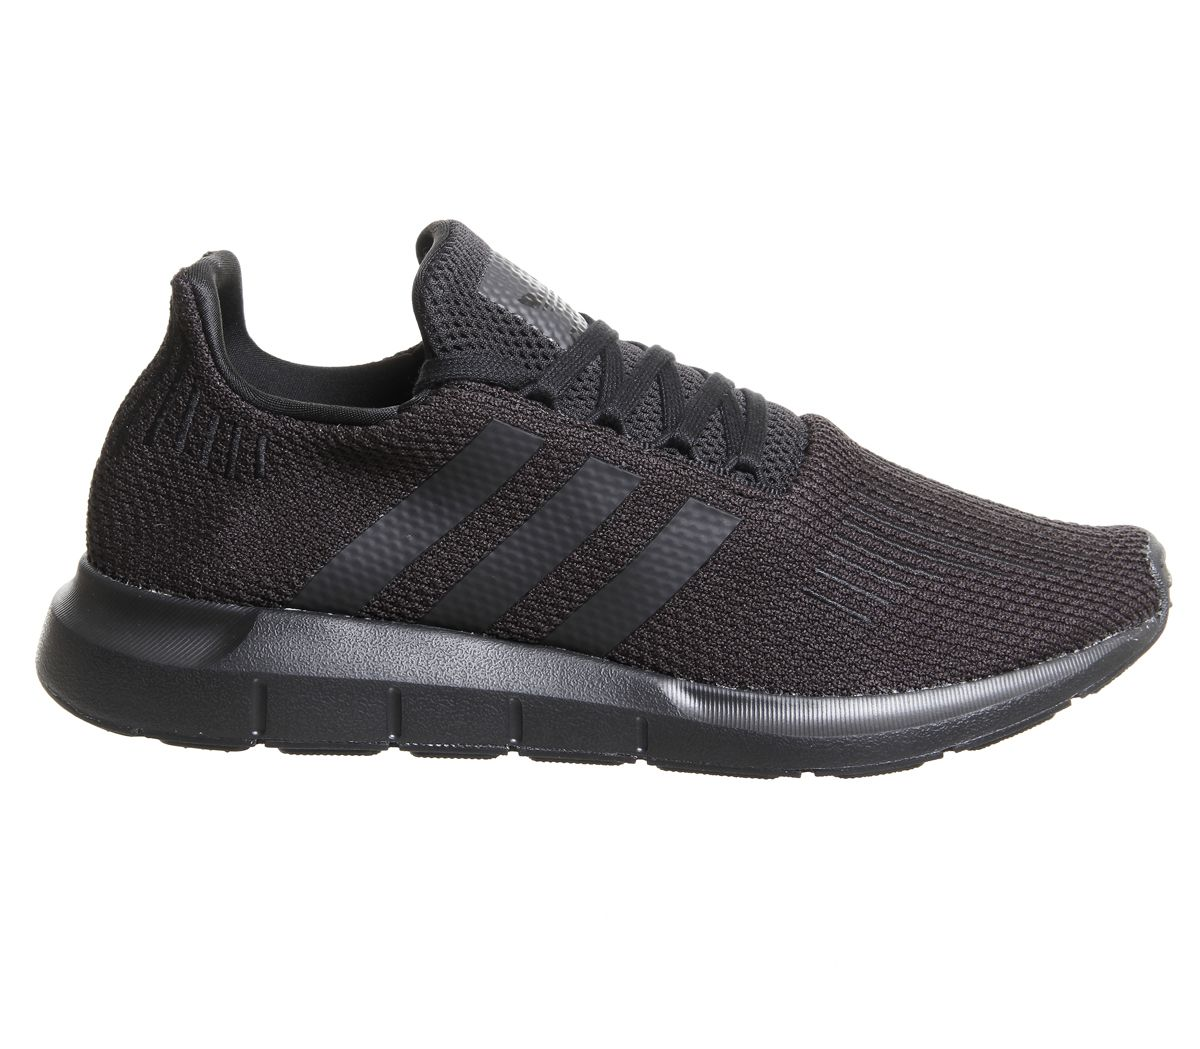 Mens-Adidas-Swift-Run-Trainers-Black-Trainers-Shoes thumbnail 4